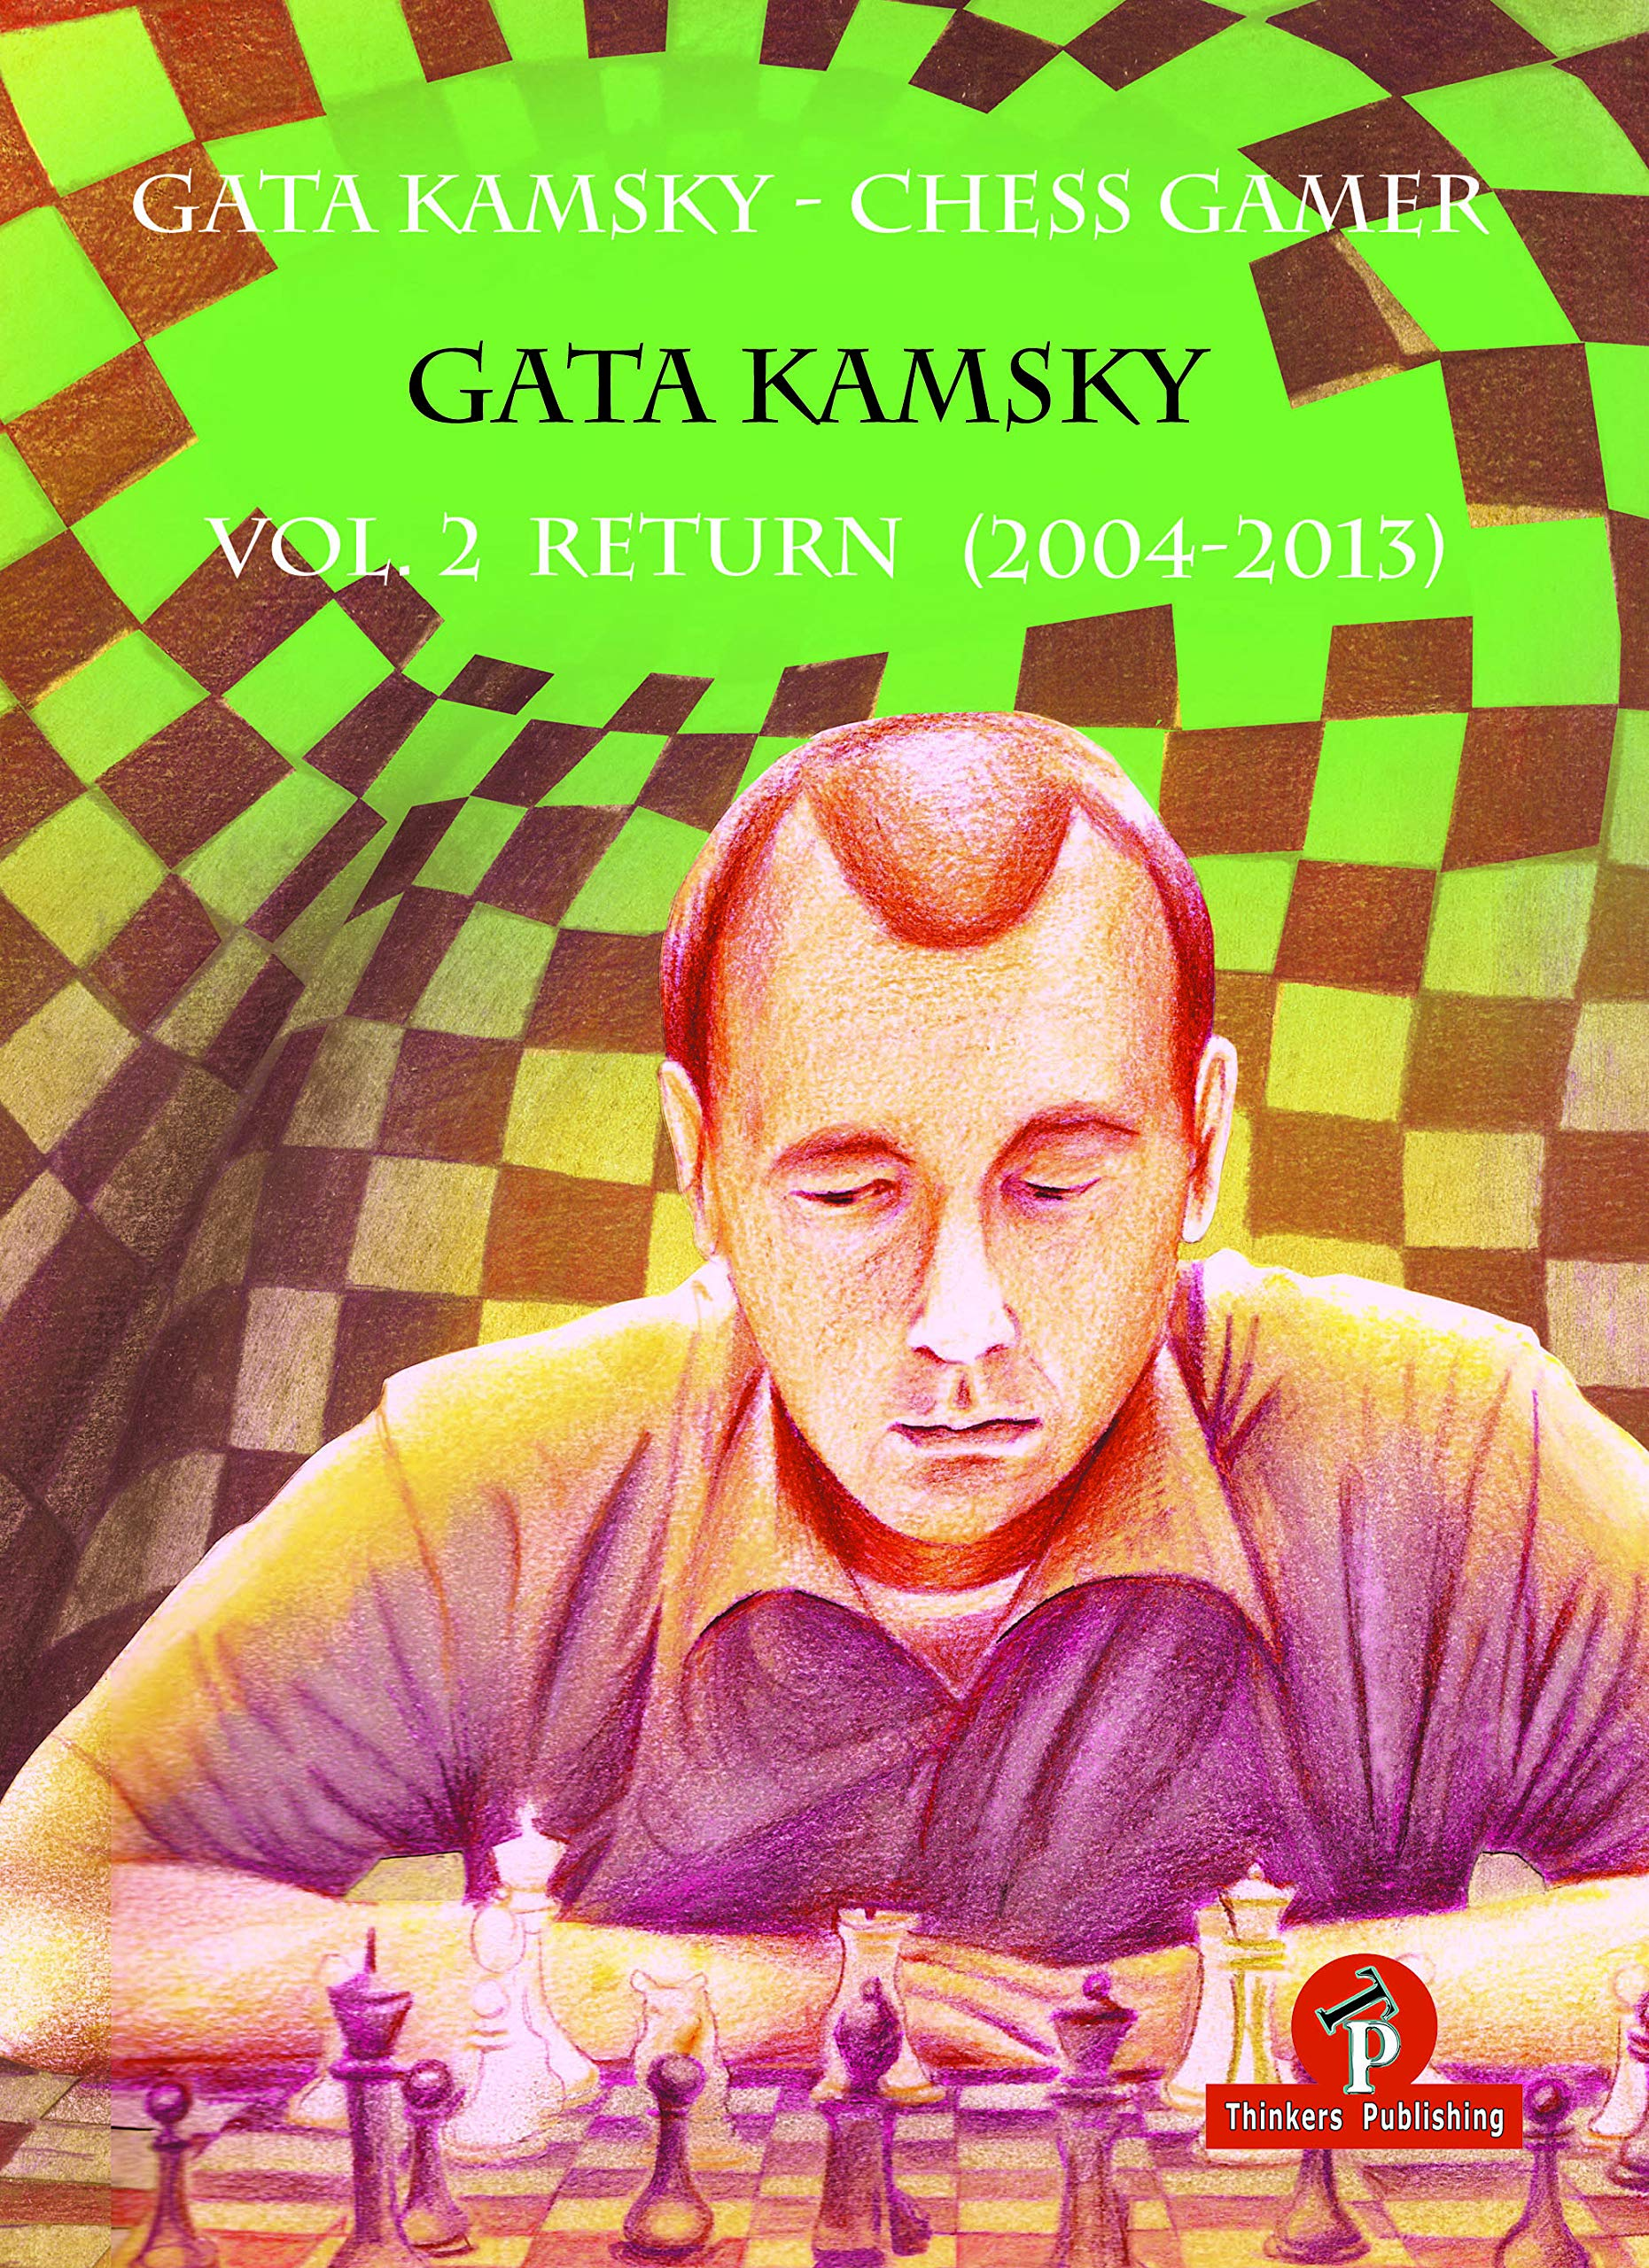 Gata Kamsky - Chess Gamer, Volume 2: Return 2004-2013